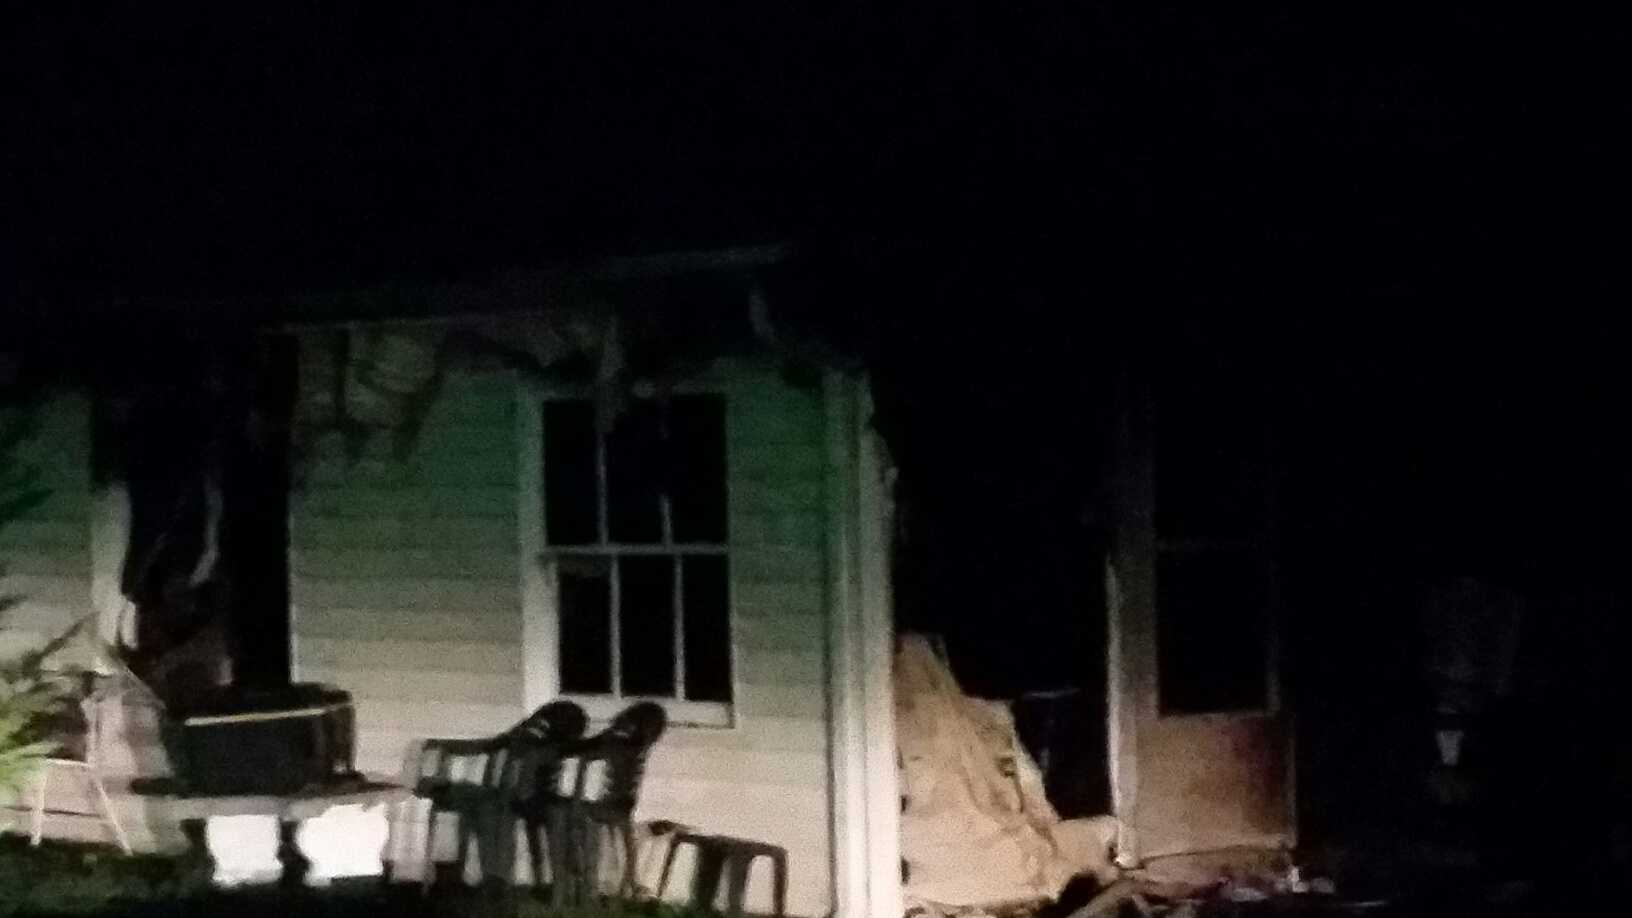 Firefighters respond to early-morning fire